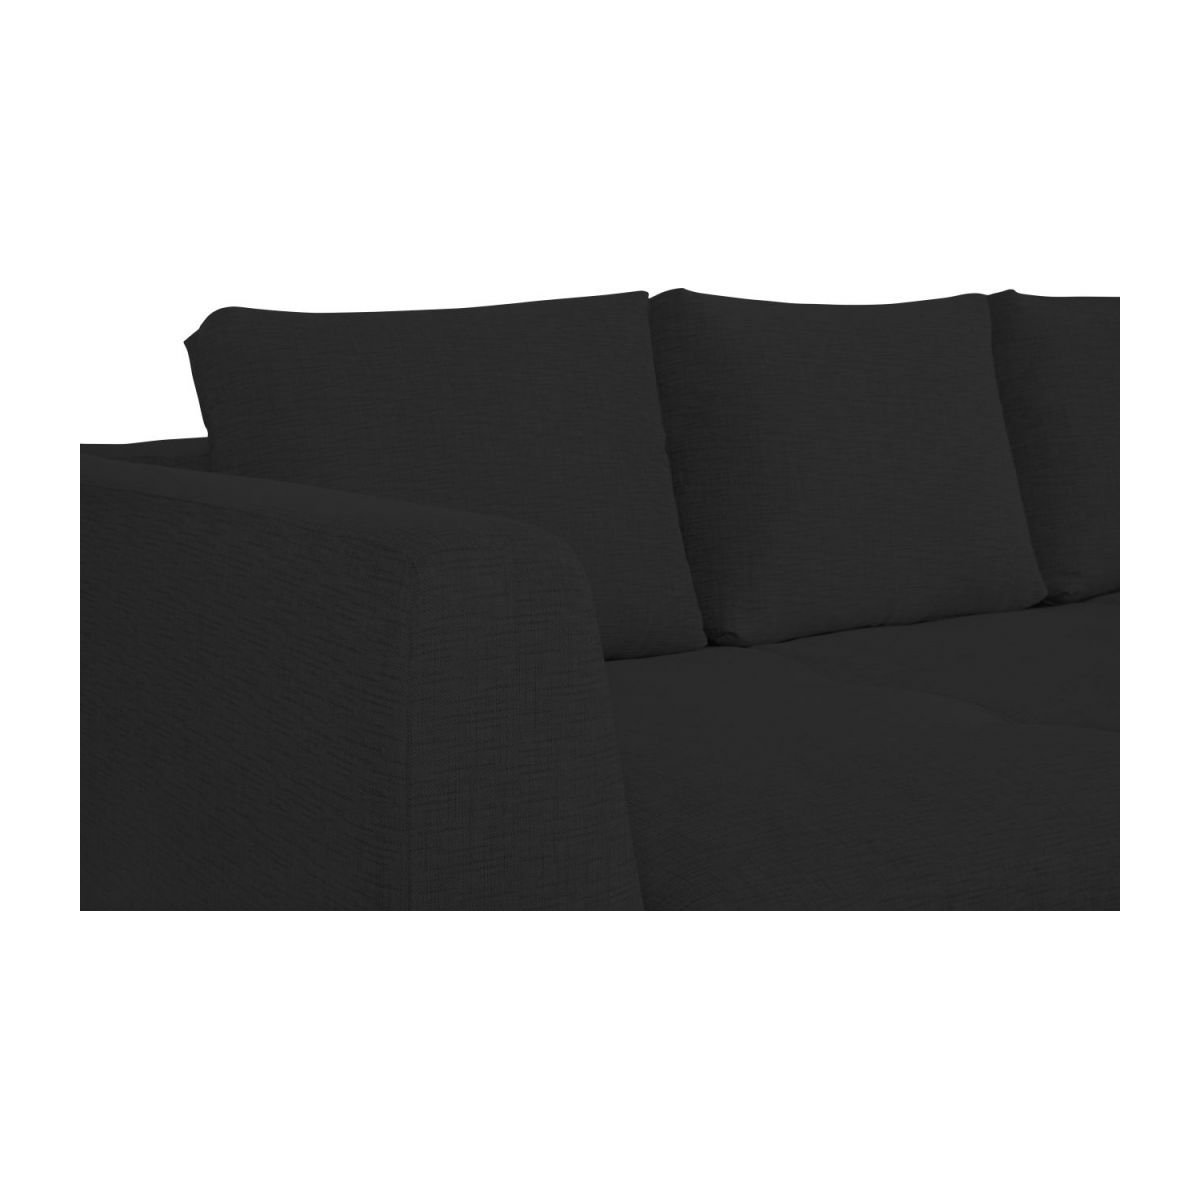 3 seater sofa in Ancio fabric, nero n°7